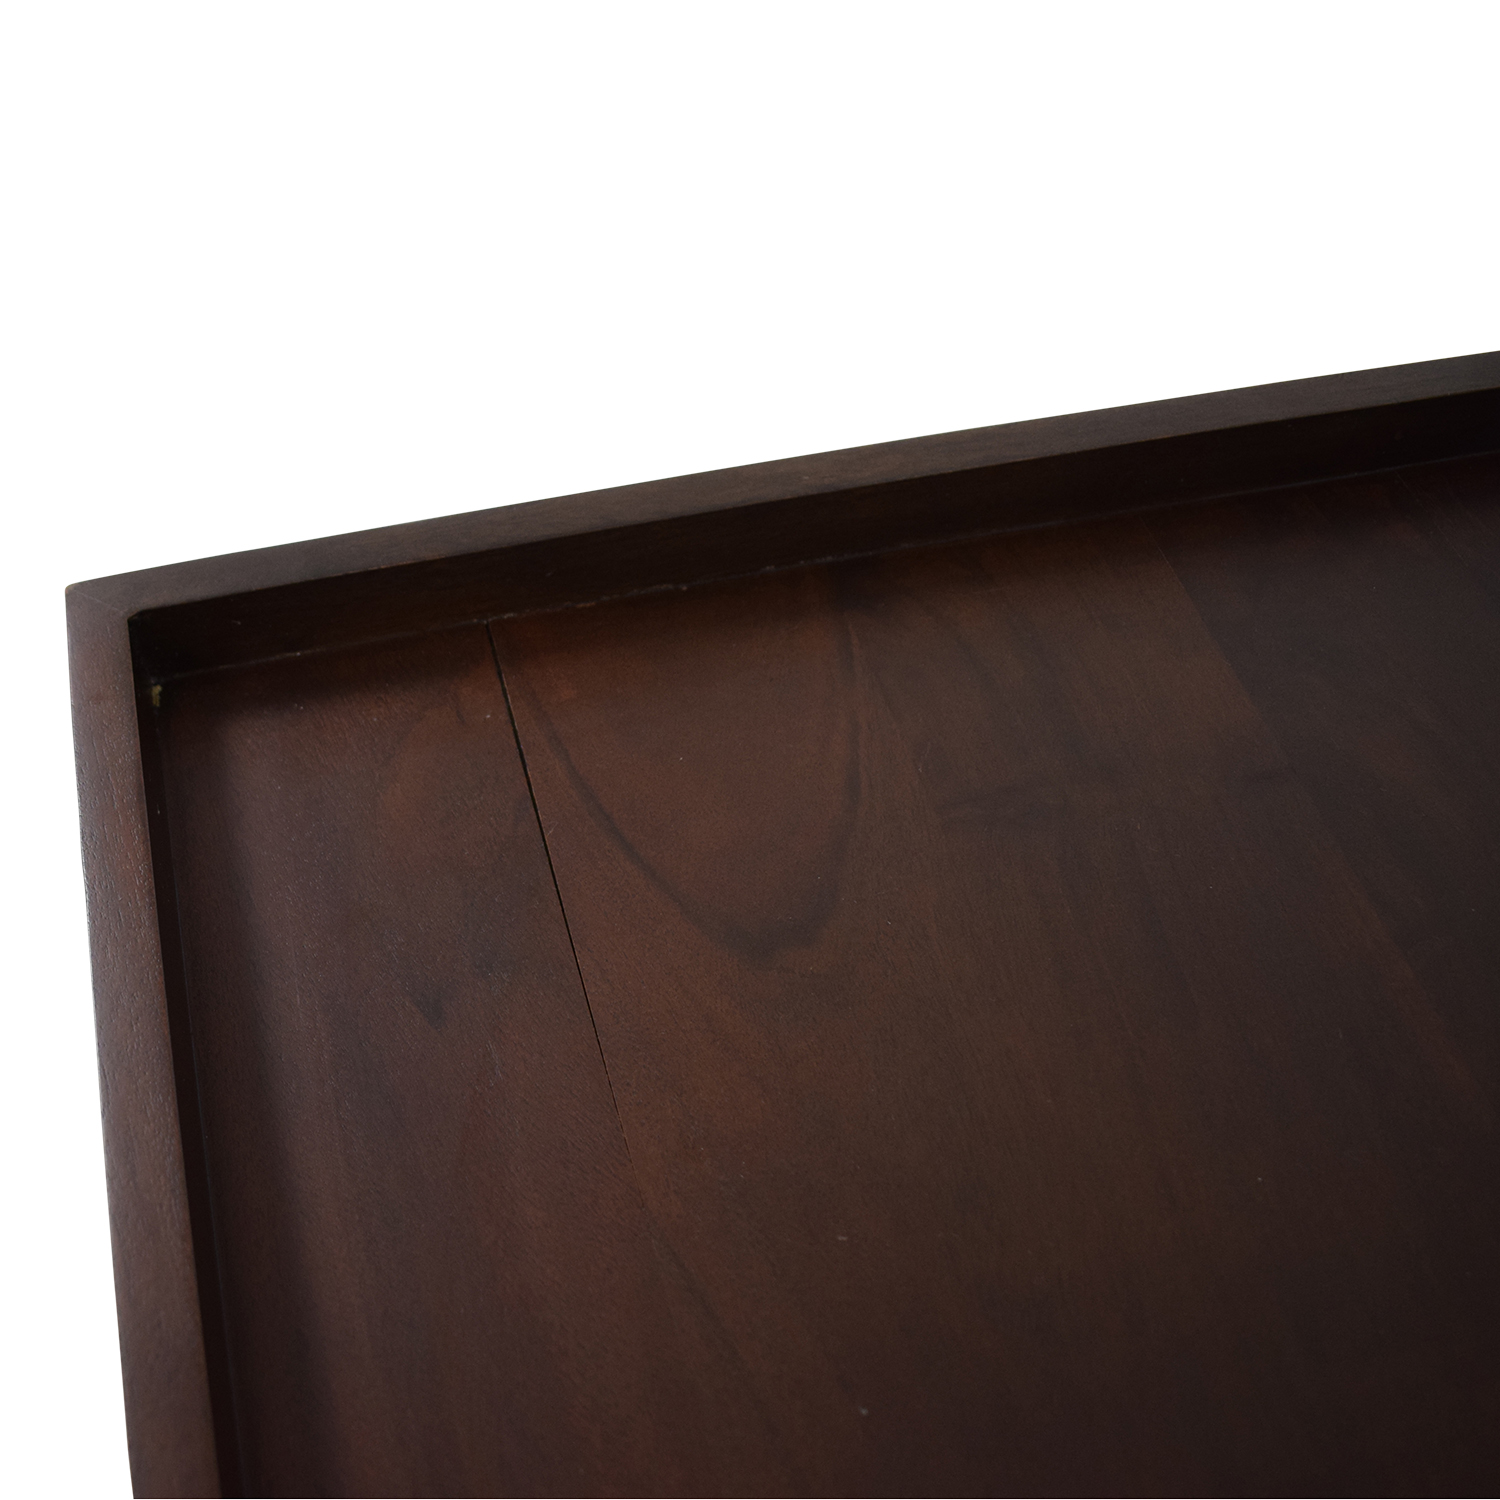 CB2 by Ross Cassidy Bento Coffee Table / Tables